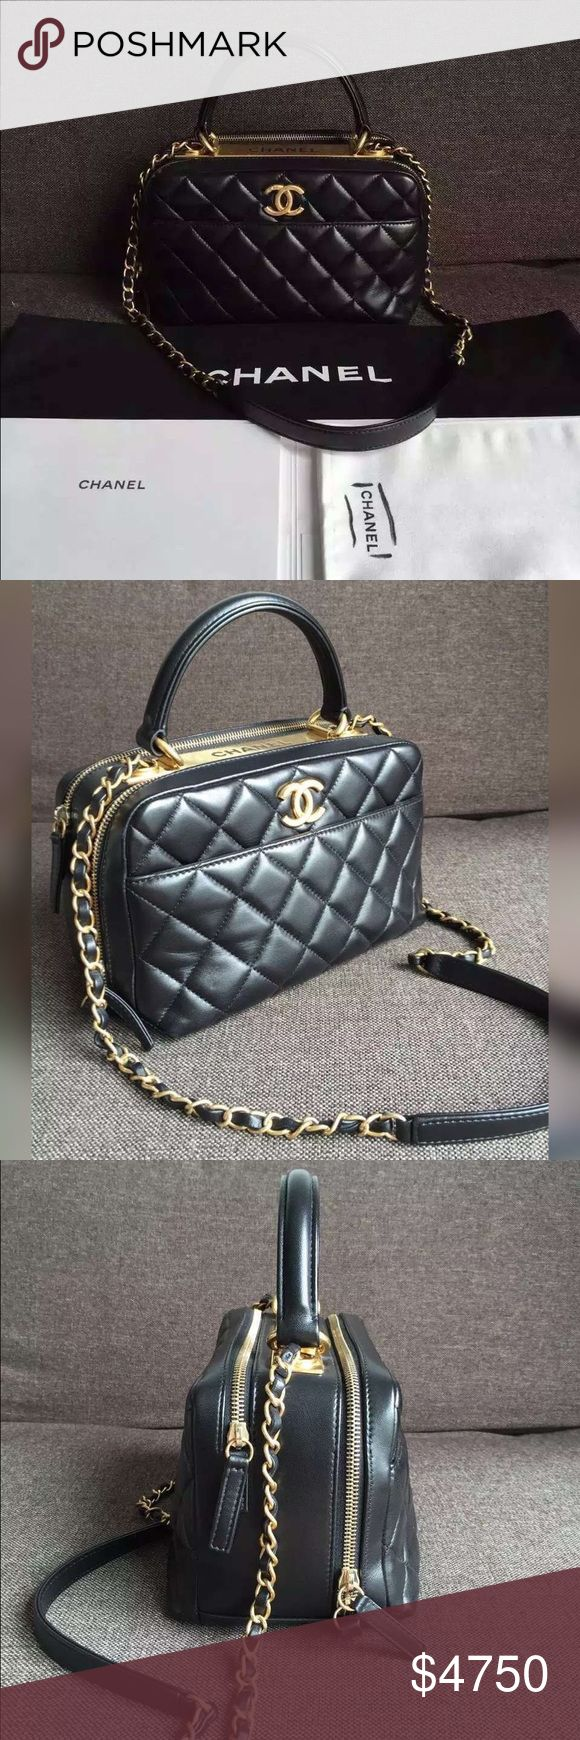 Auth NEW Chanel 2016 Bowling Bag Quilted Black GHW BRAND NEW NEVER WORN! 2016 NEWEST CHANEL RELEASE! COMES WITH FULL PACKAGE! Purchased directly from Chanel boutique on trip to Japan! 100% GUARANTEED AUTHENTIC OR 10X YOUR MONEY BACK!!  PLEASE VISIT OUR OFFICIAL ONLINE SHOP AT WWW.AUTHENTICLUXURIESTW.COM FOR MORE GORGEOUS LUXURY ITEMS AT AMAZING PRICES. PHOTOS ARE TAKEN OF THE EXACT SAME ITEM YOU WILL RECEIVE! WHAT YOU SEE IS WHAT YOU GET*** PLEASE CONTACT ME AT authenticluxuries11@gmail.com…